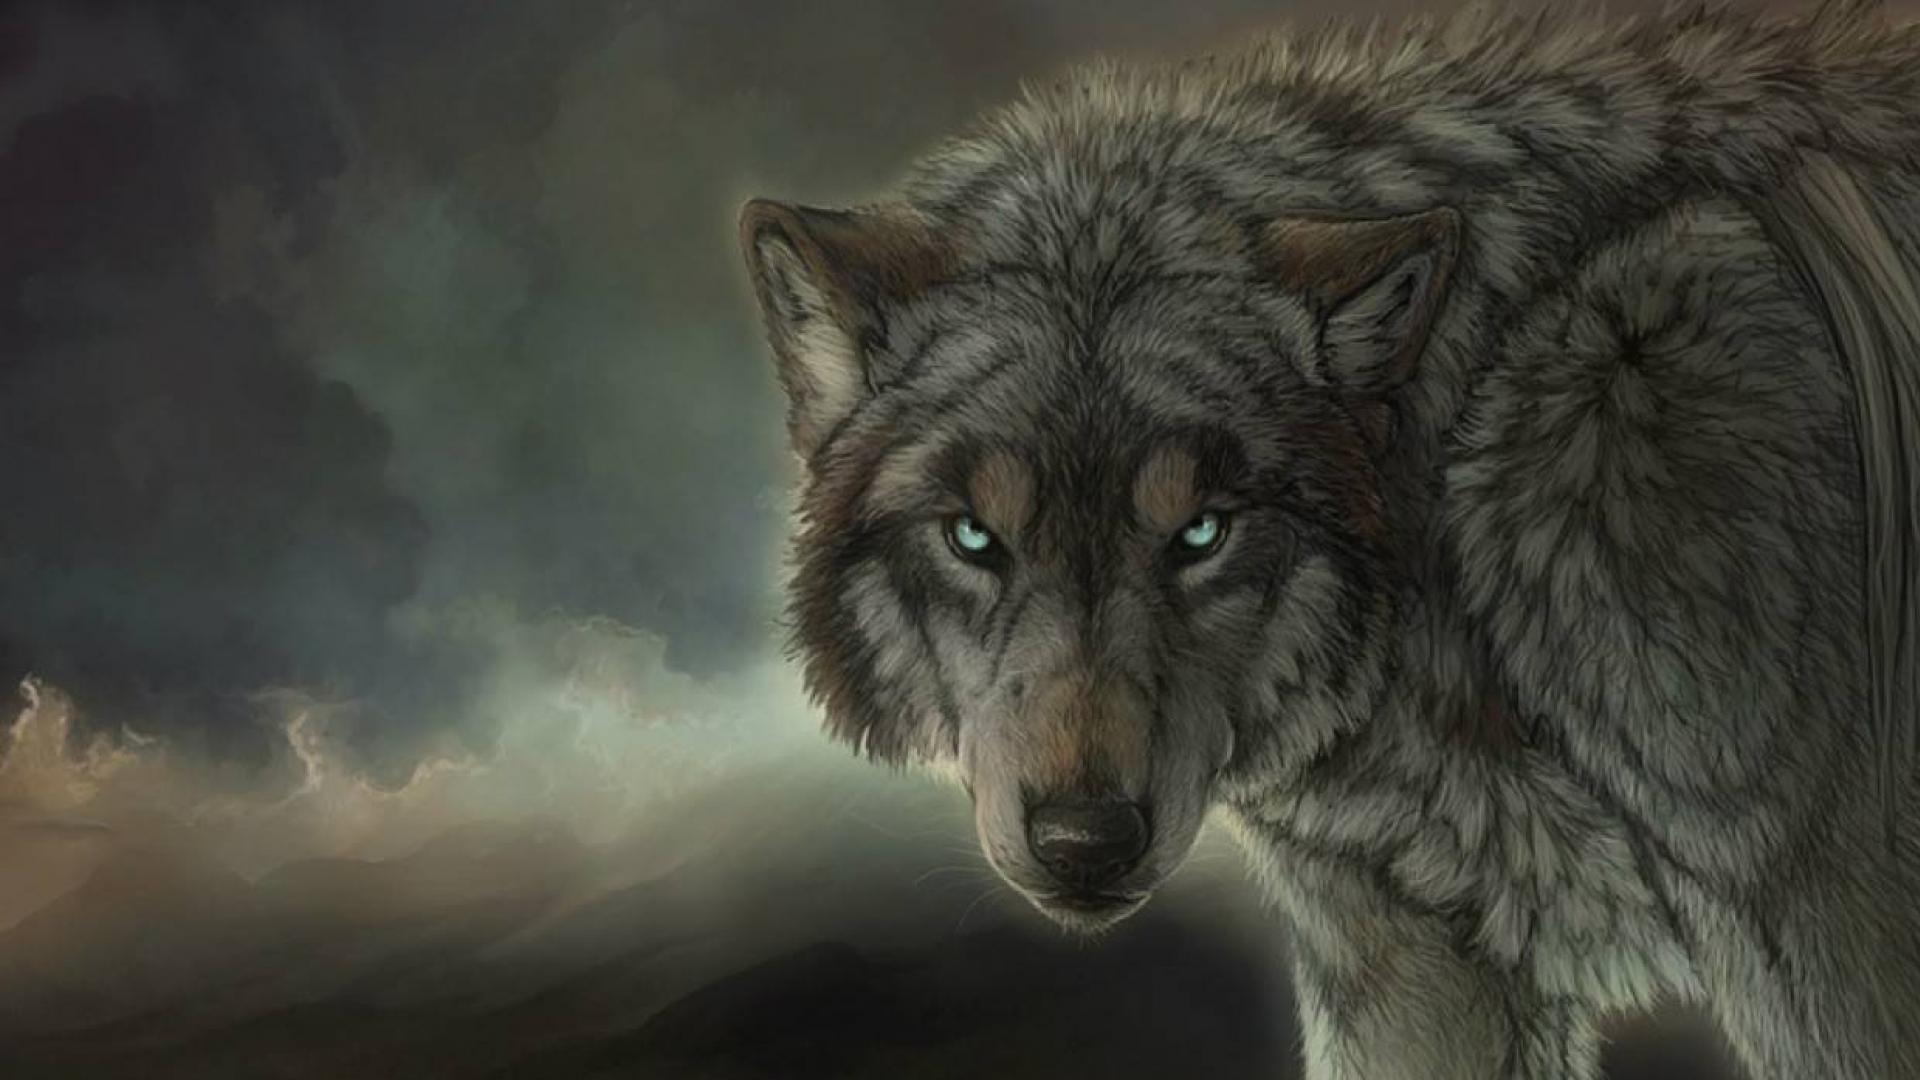 Lone Wolf Hd Wallpapers Top Free Lone Wolf Hd Backgrounds